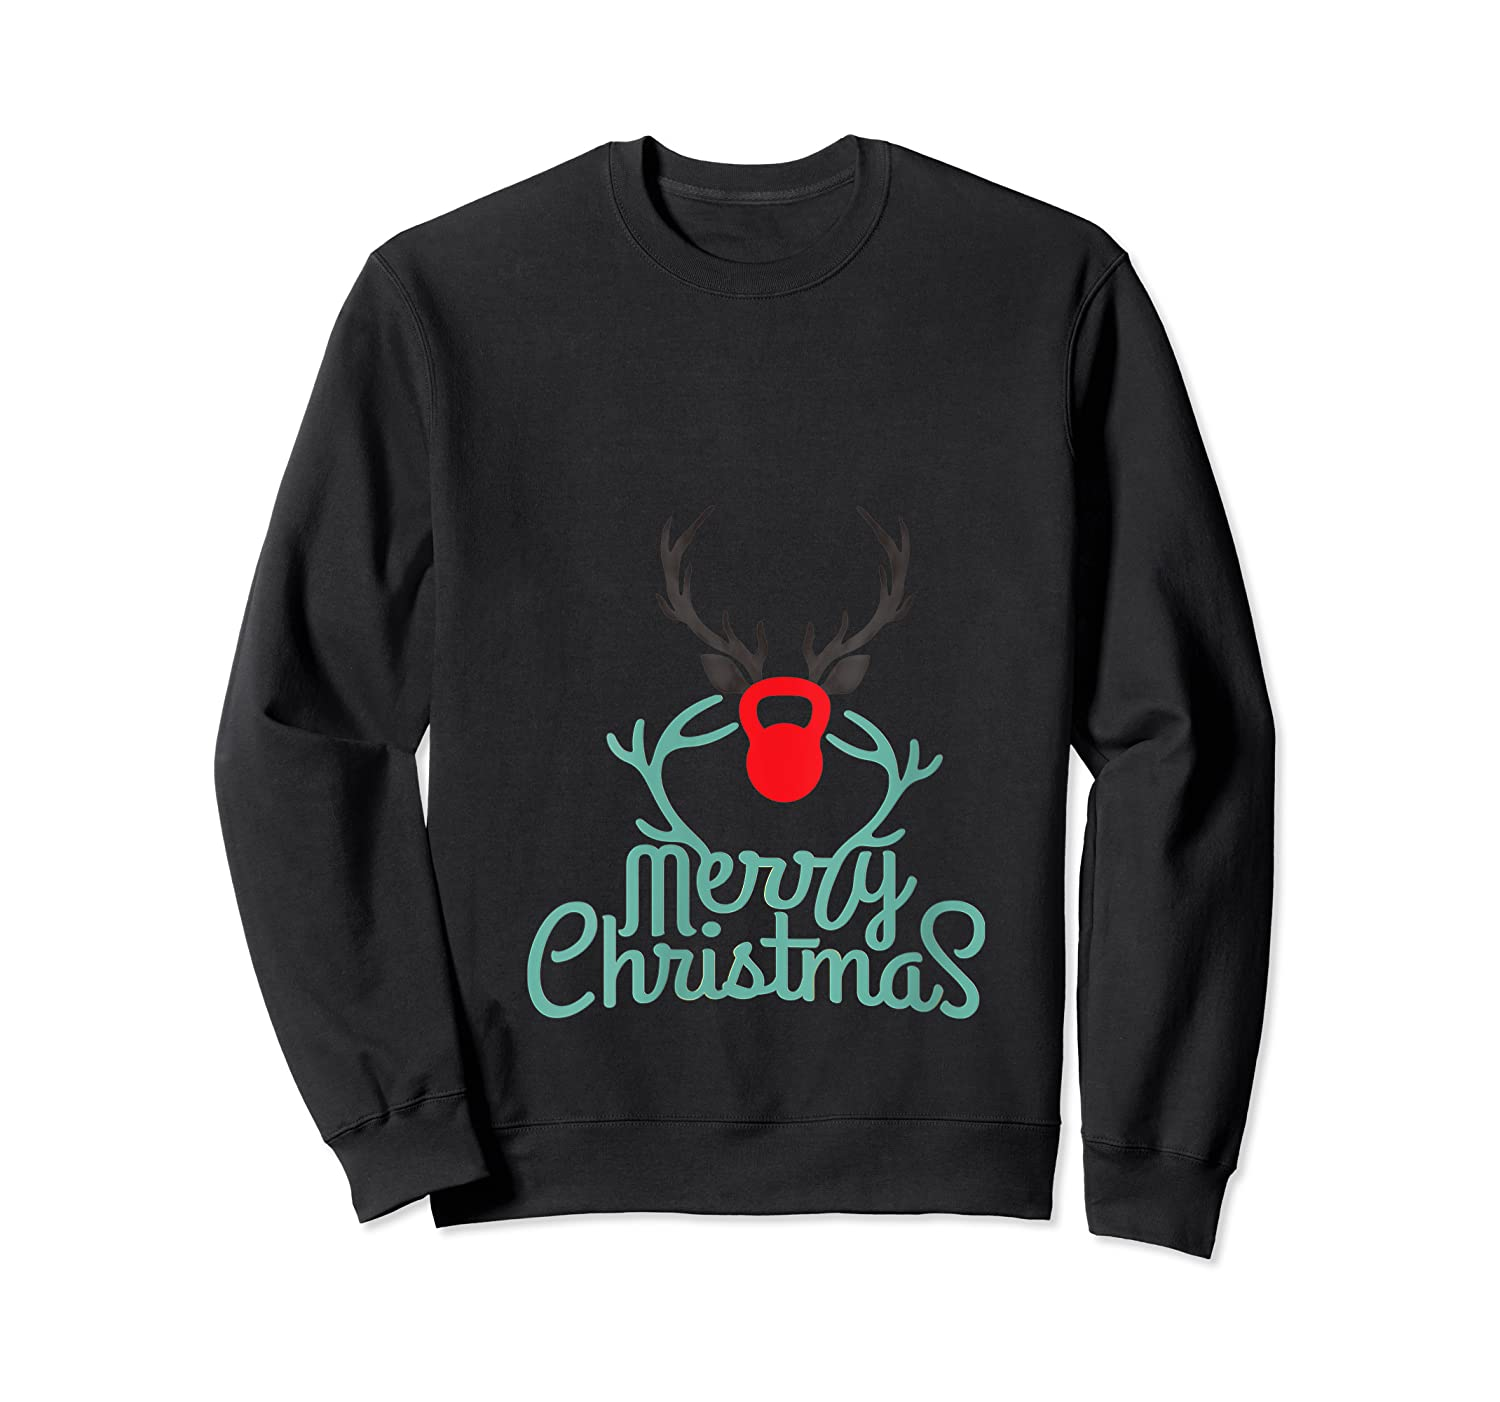 Merry Xmas Antlers Kettlebell Weightlifting Ness Workout Shirts Crewneck Sweater